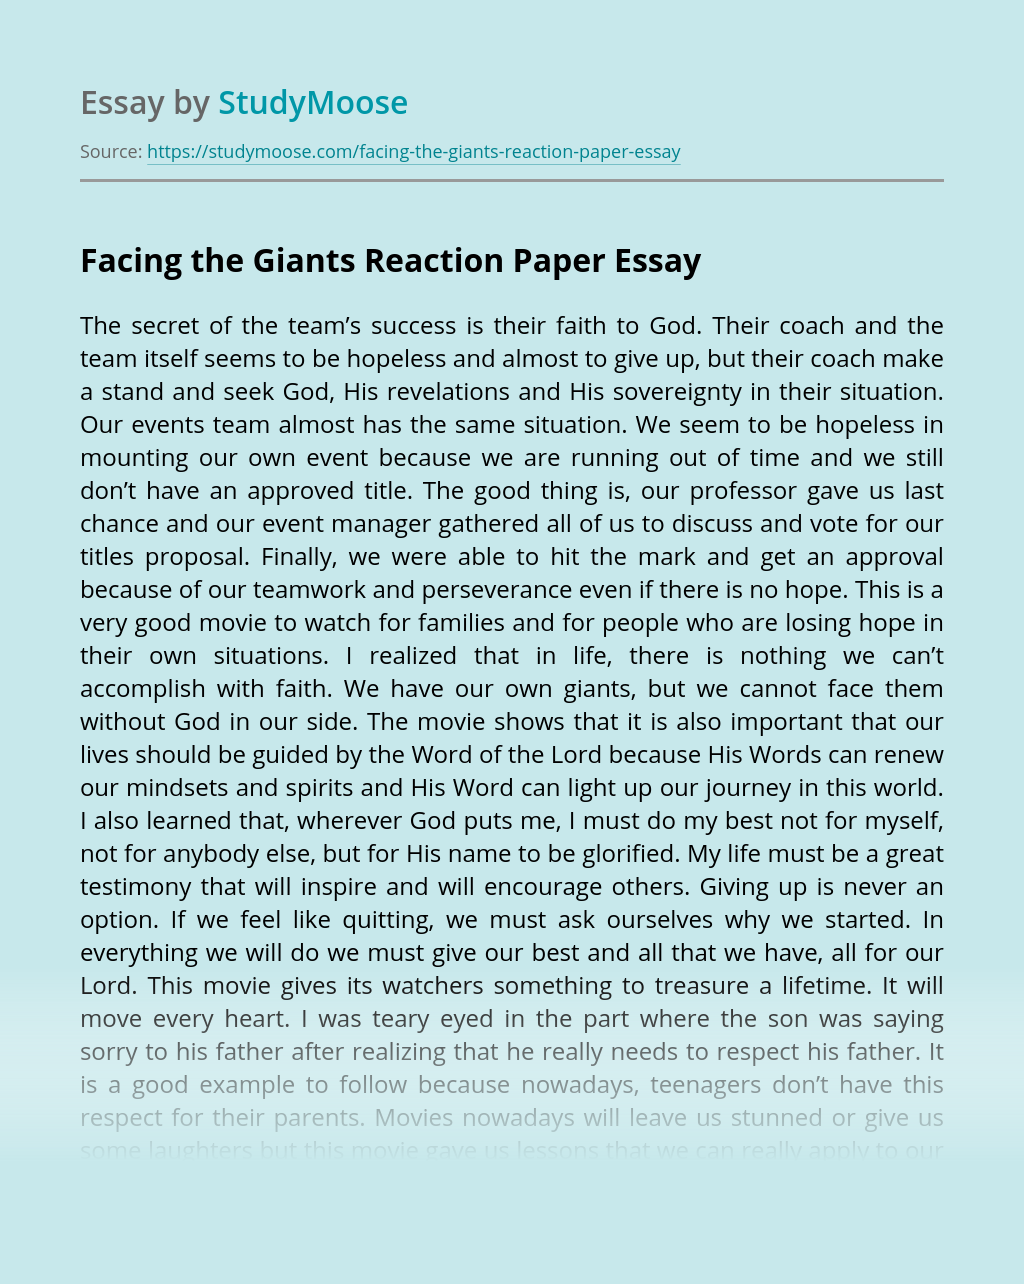 Facing the Giants Reaction Paper